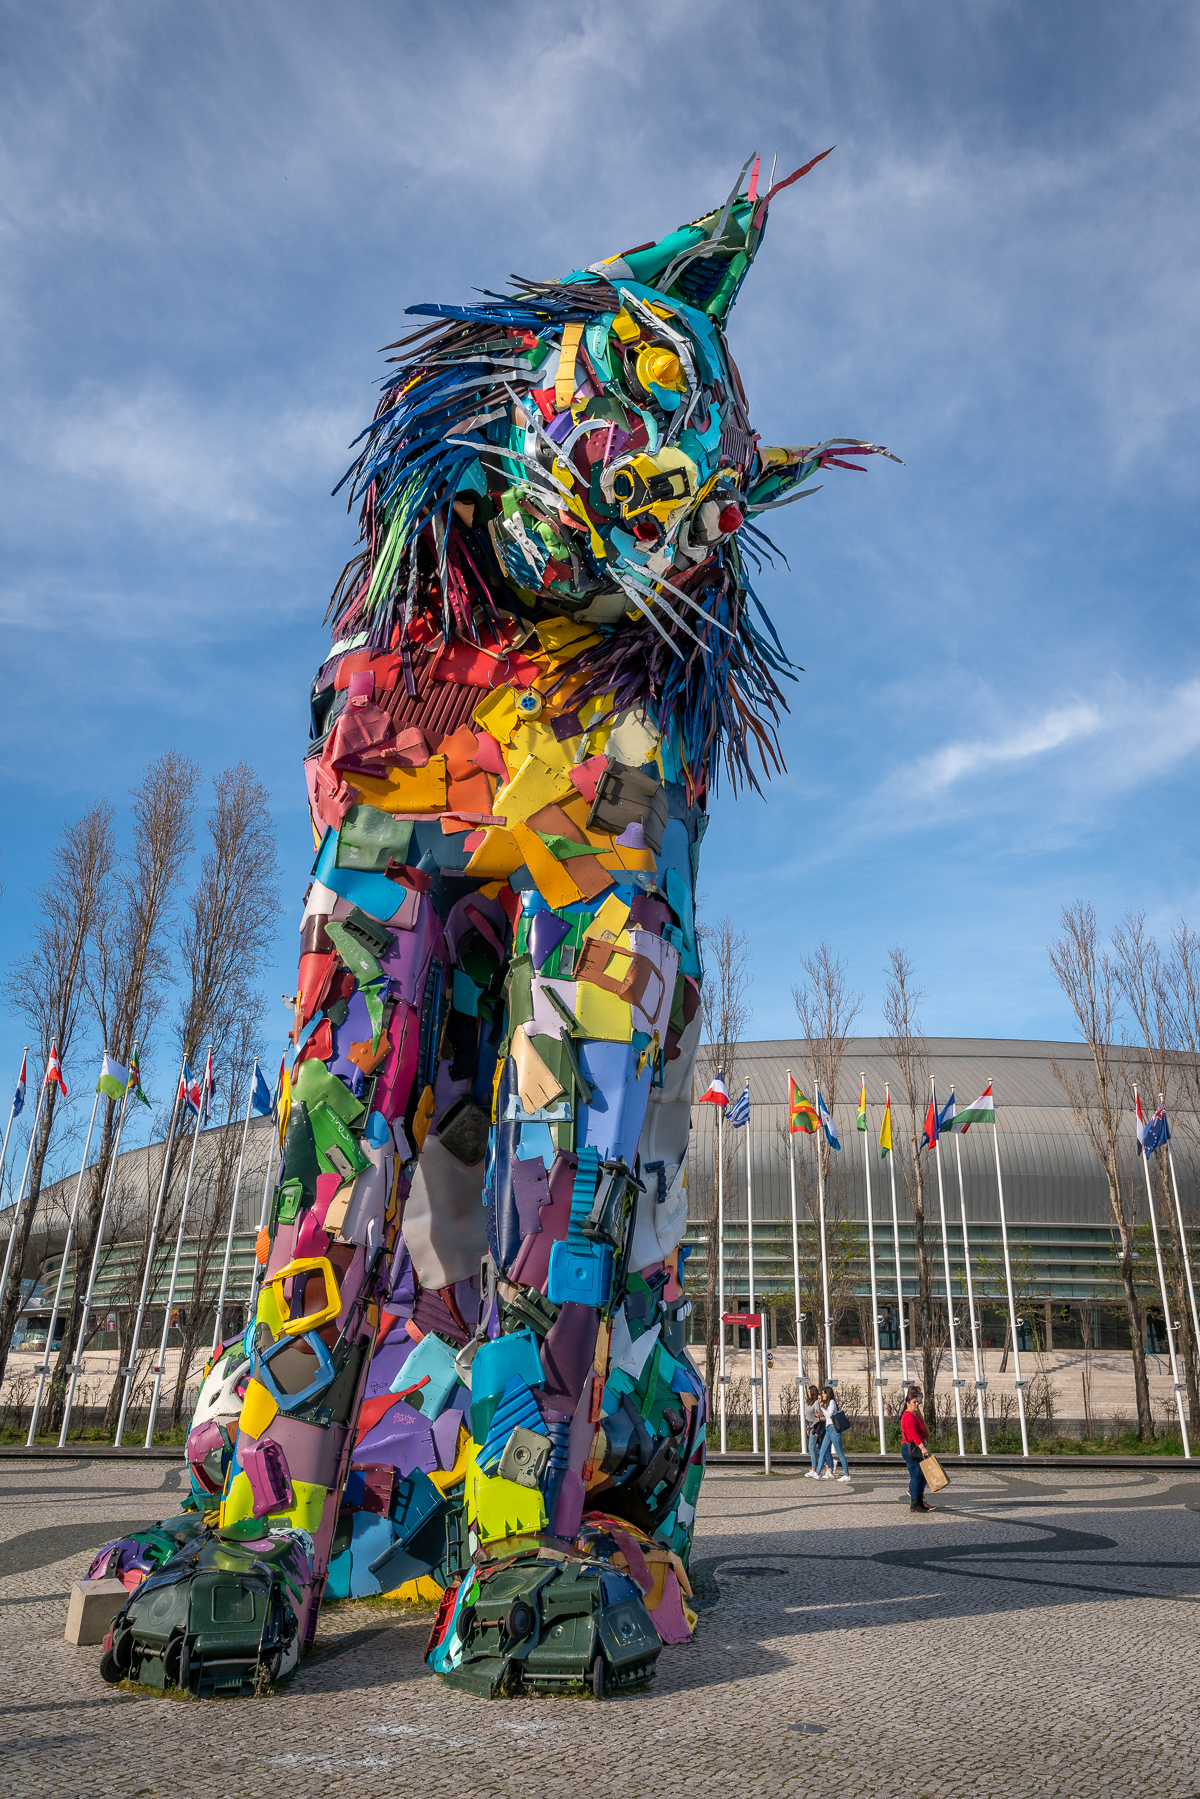 Giant Iberian lynx statue in a patchwork of colours, repurposing old plastic items